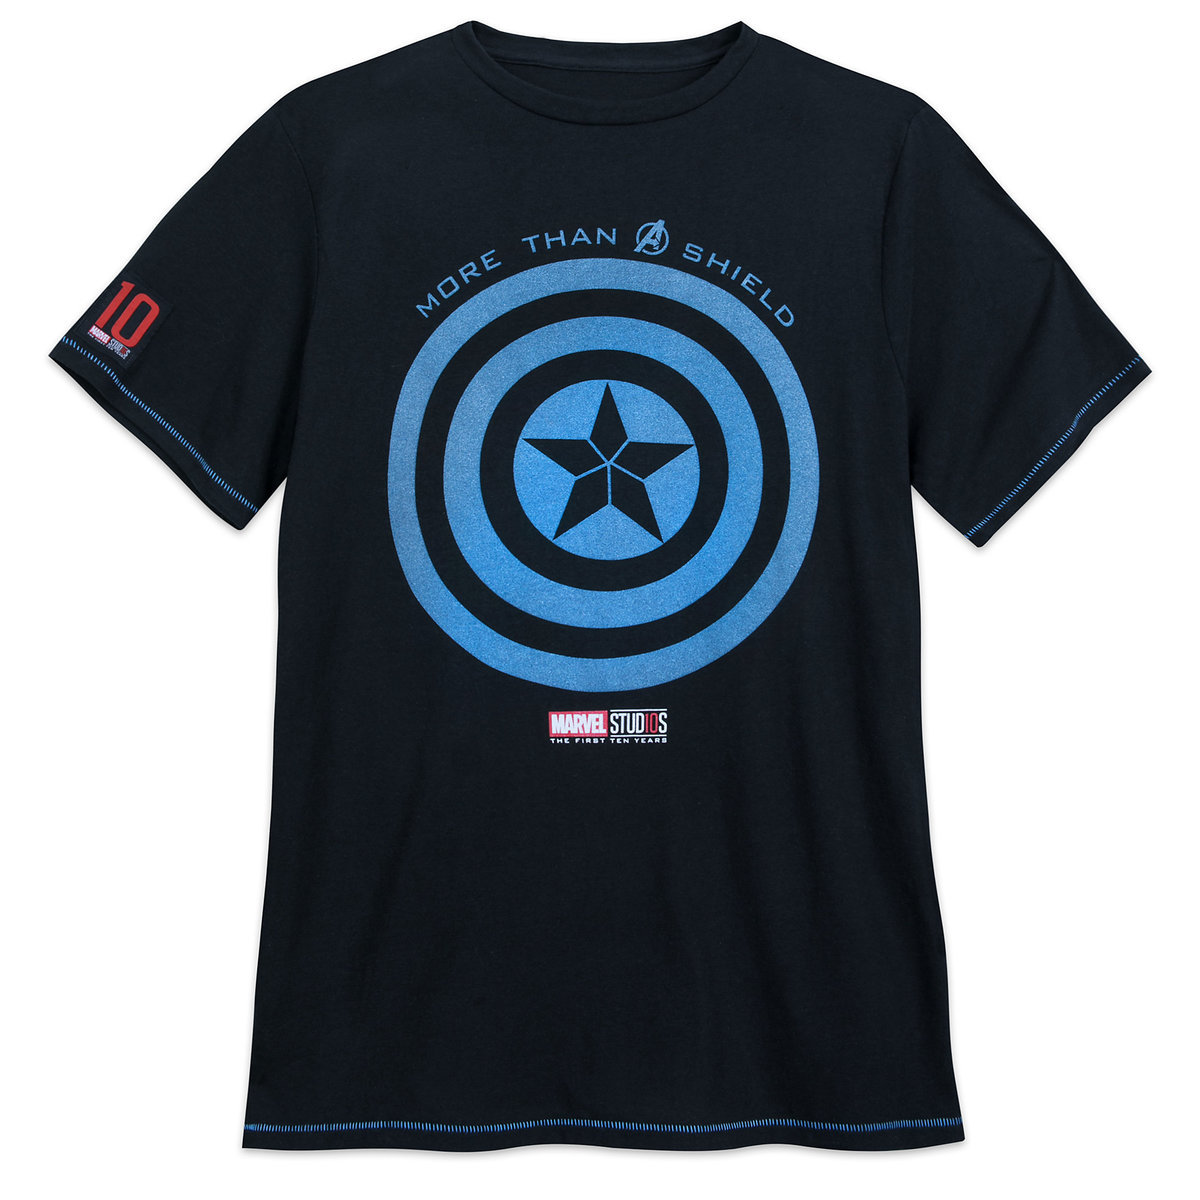 58afeb6e Product Image of Captain America T-Shirt for Men - Marvel Studios 10th  Anniversary #